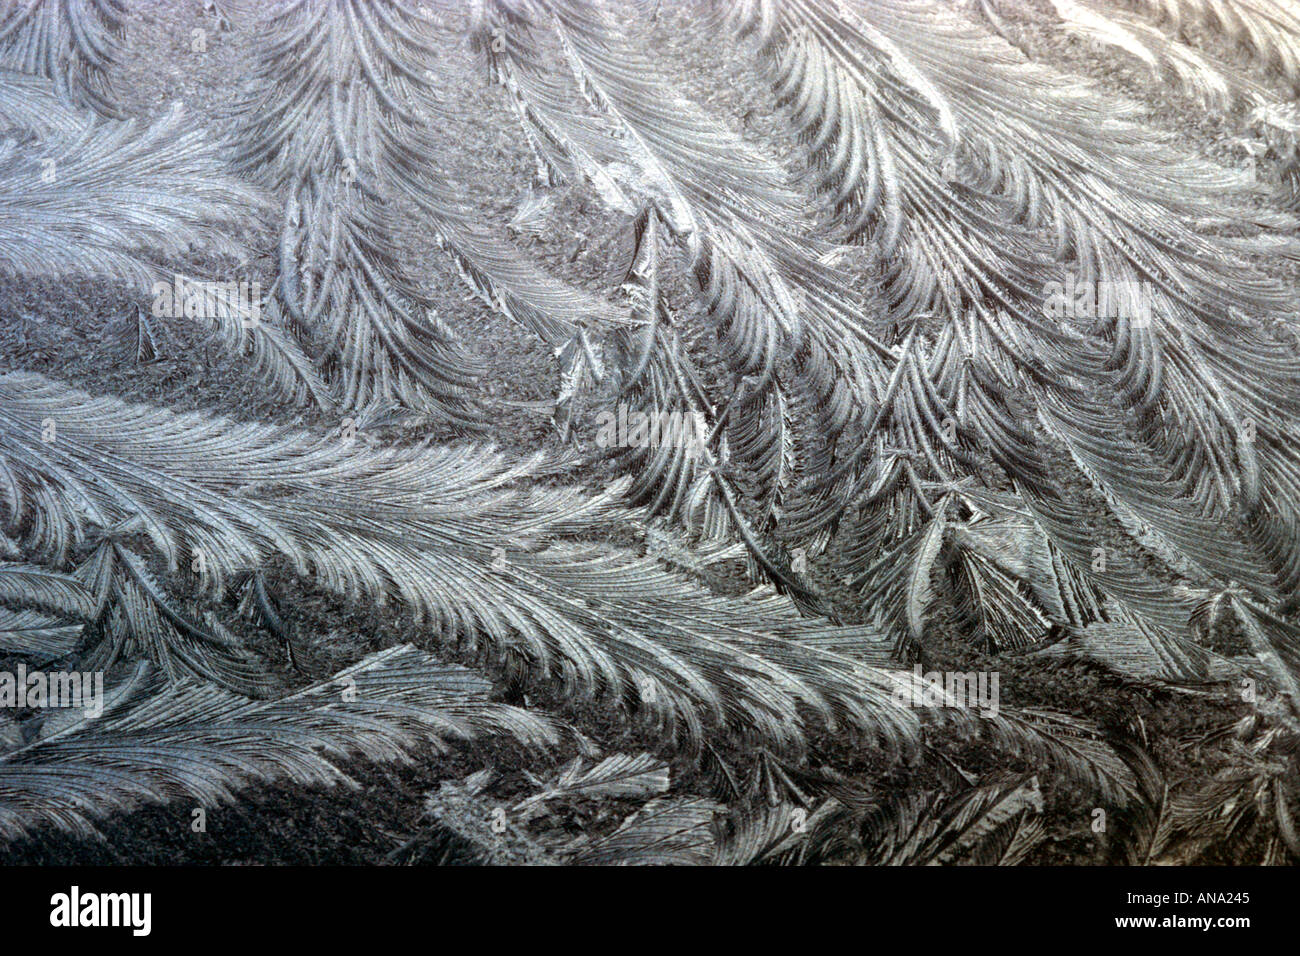 ice crystals on car windscreen - Stock Image